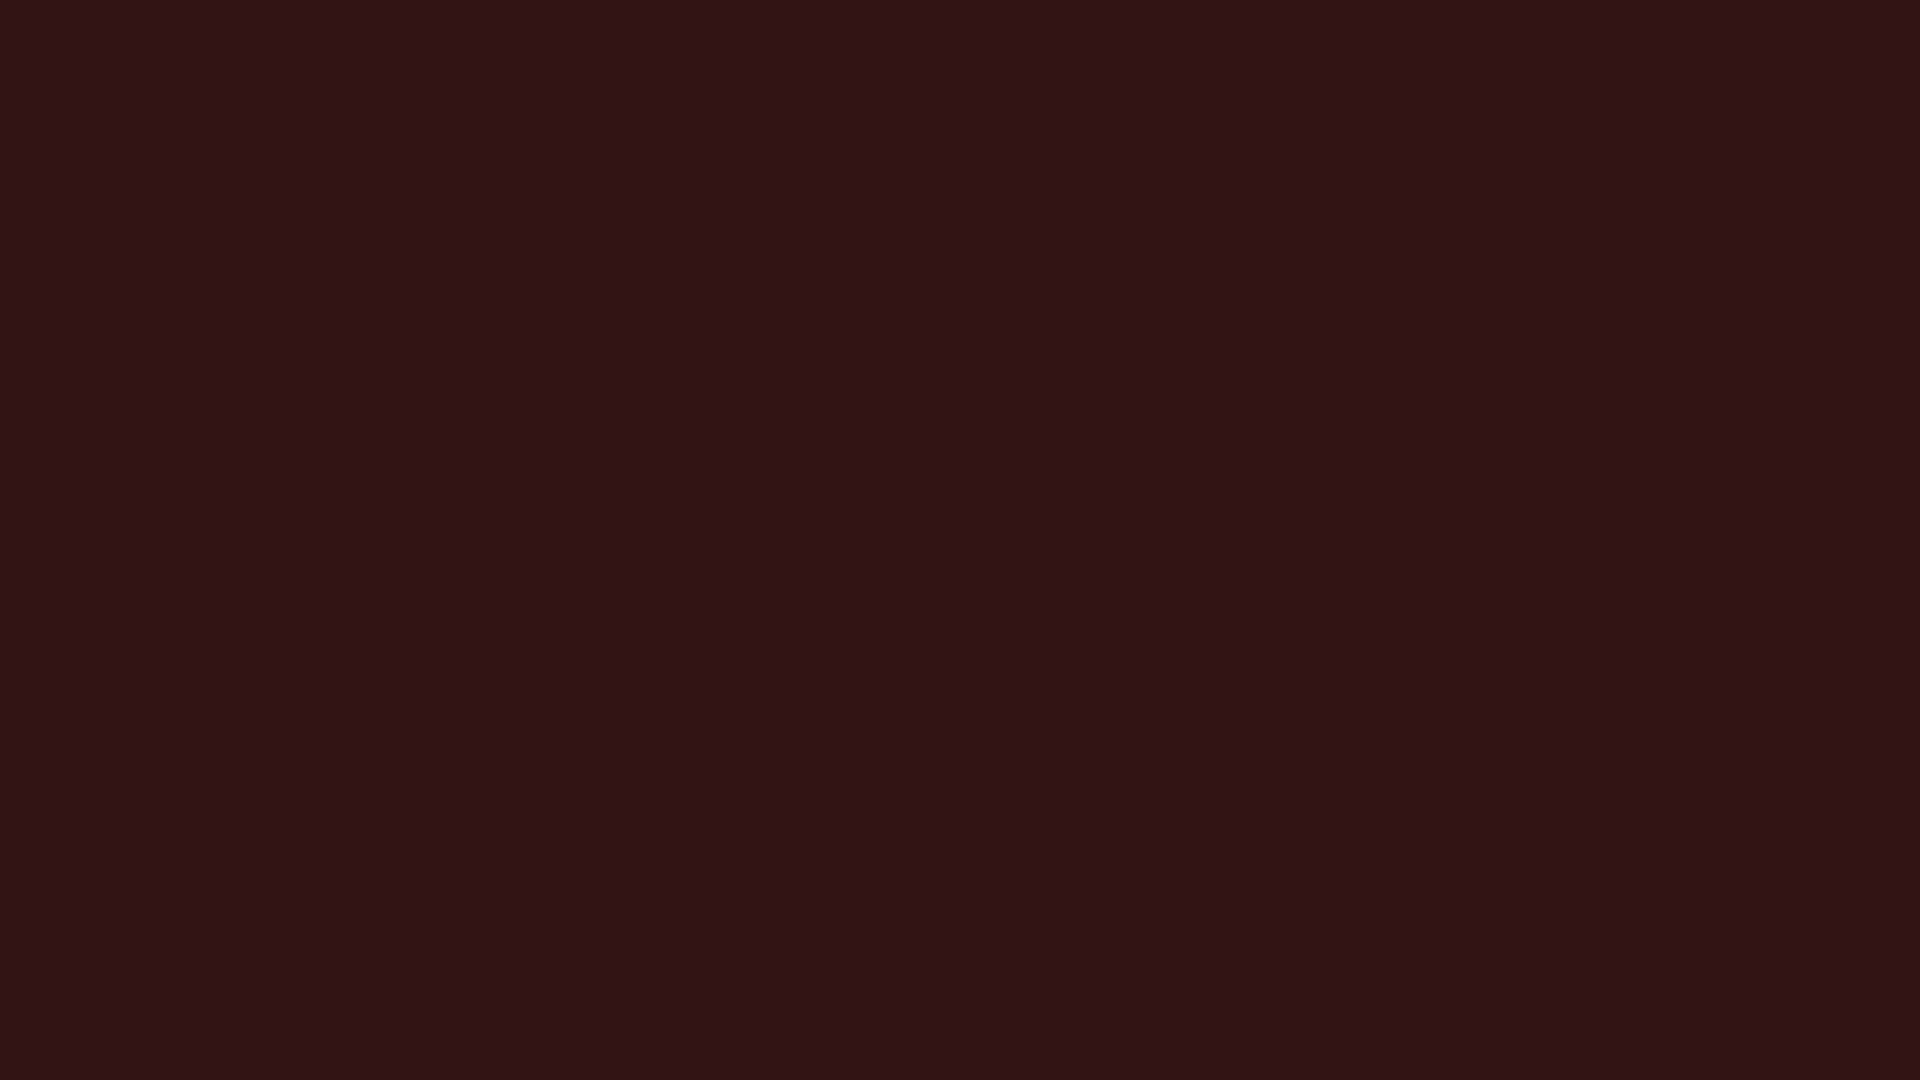 1920x1080 Seal Brown Solid Color Background